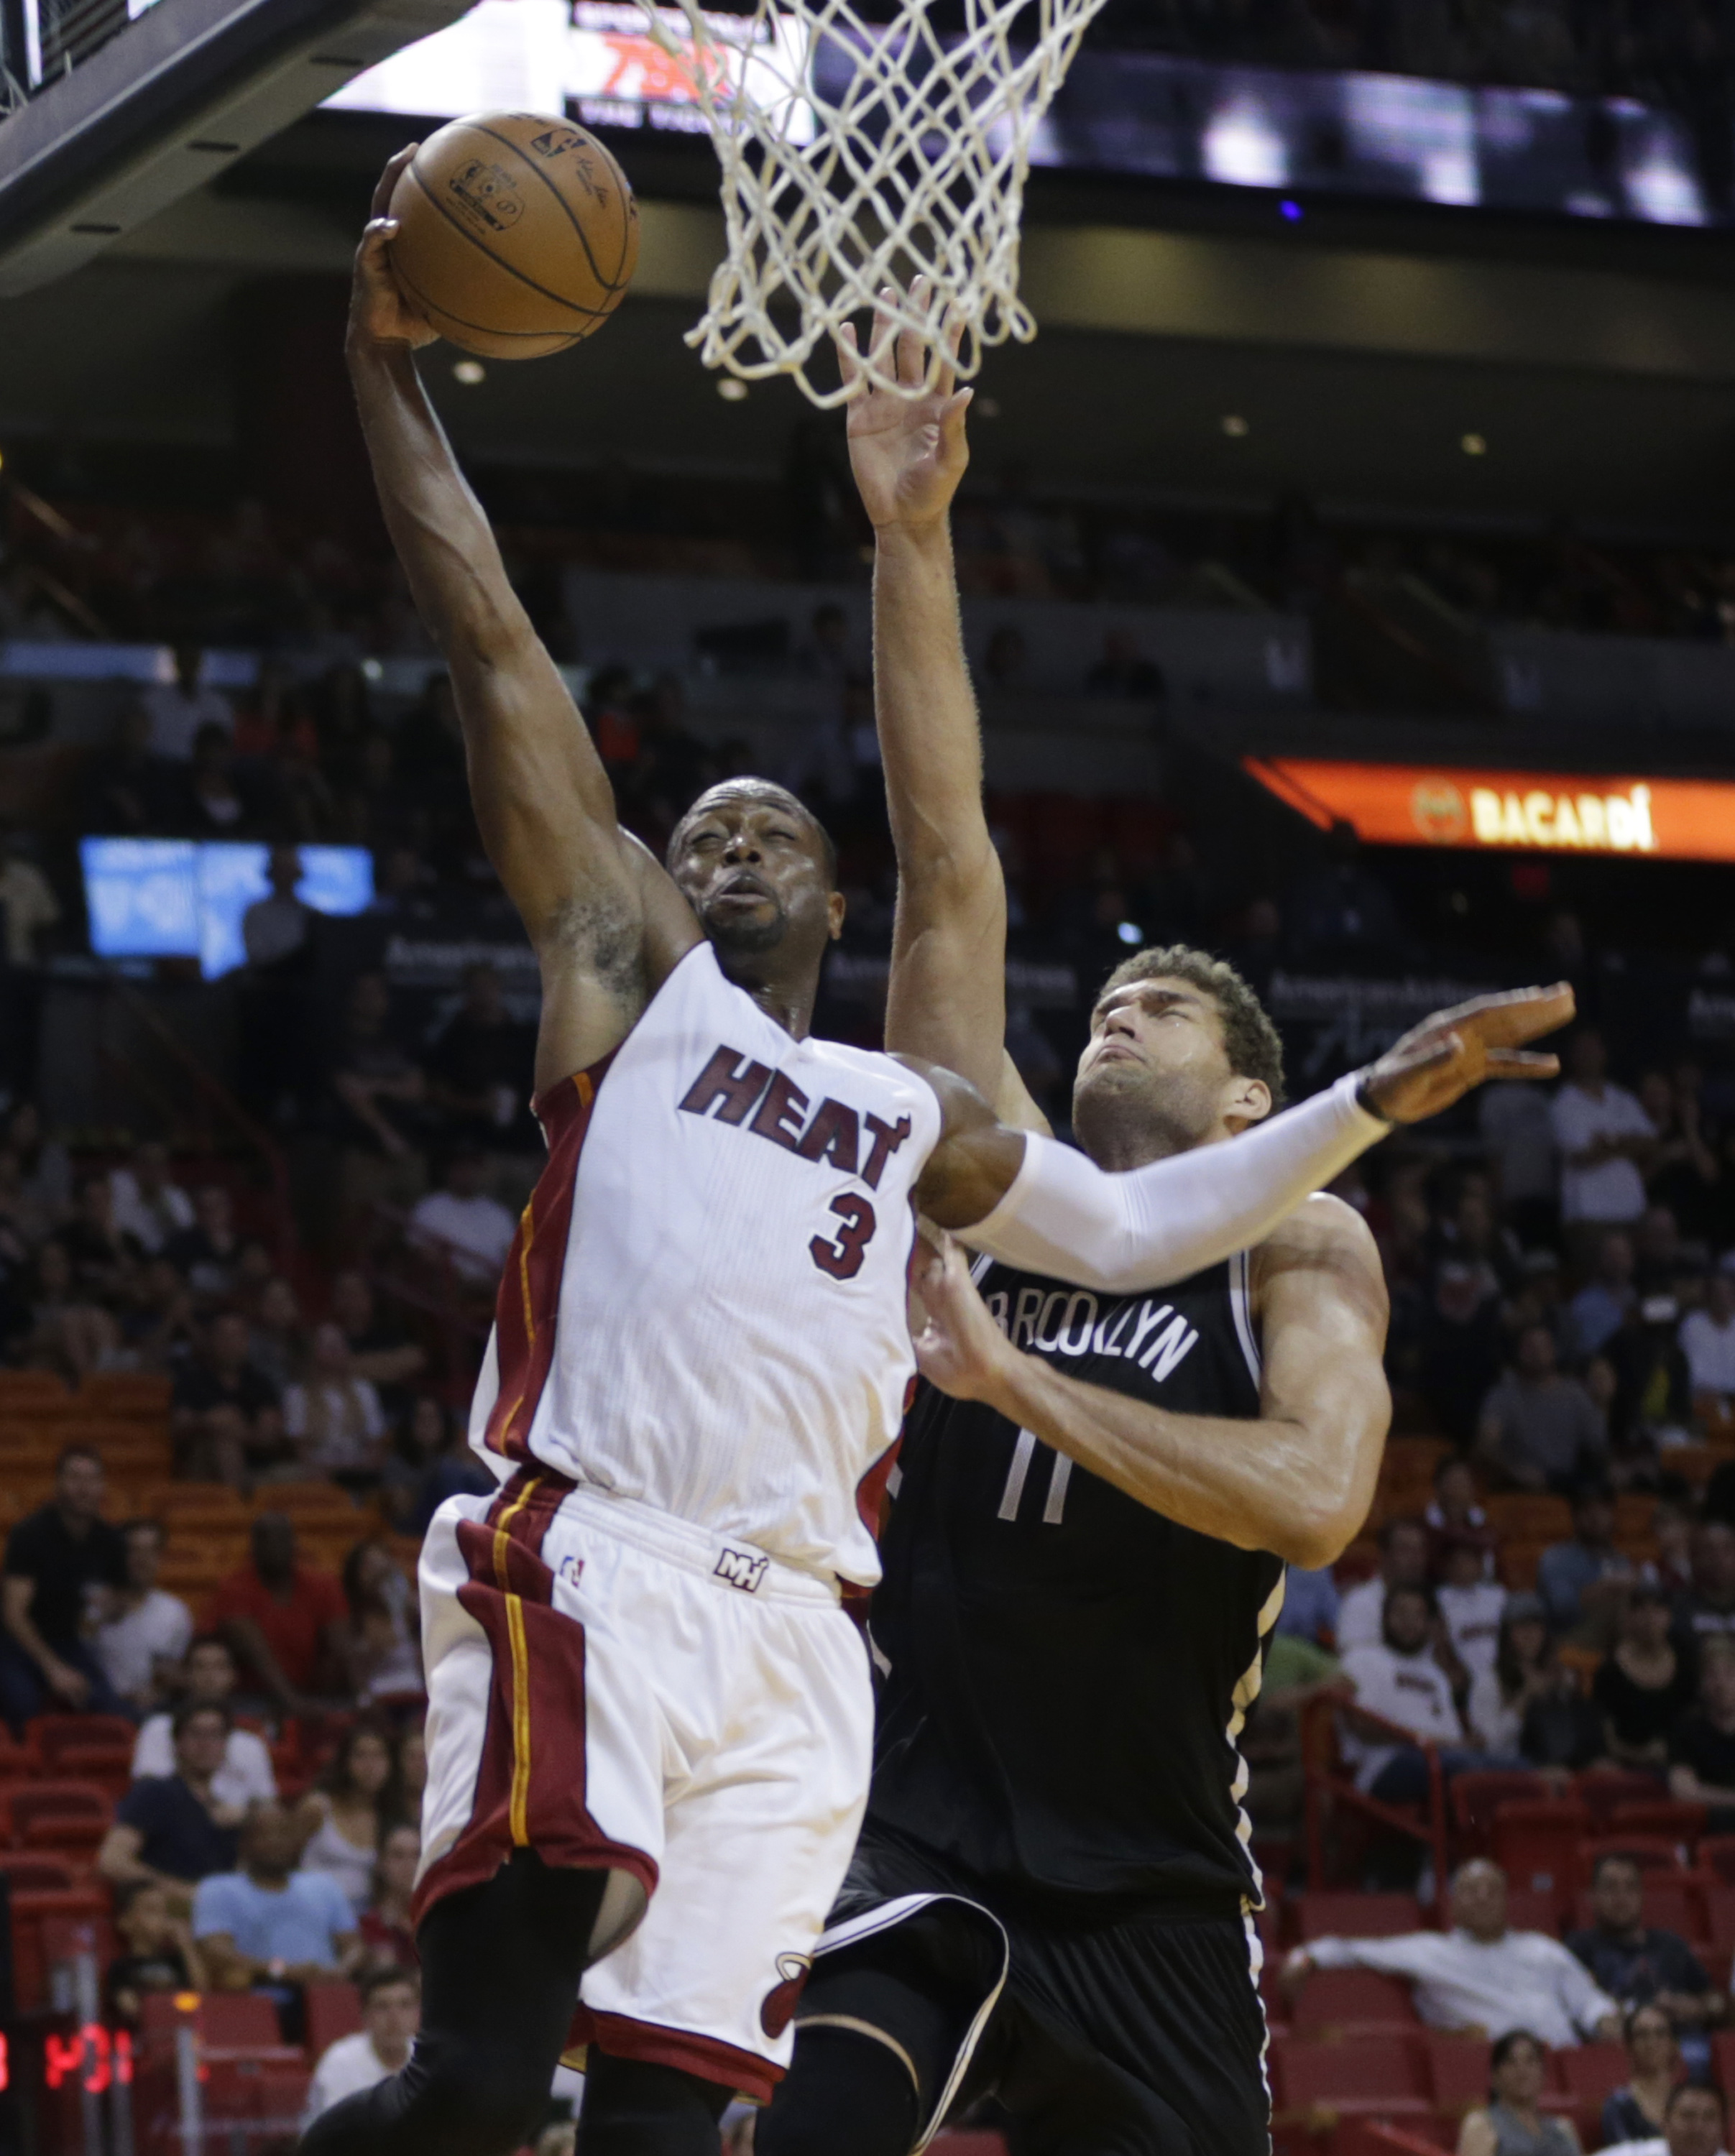 Miami Heat's Dwyane Wade (3) drives to the basket as Brooklyn Nets' Brook Lopez (11) defends during the second half of an NBA basketball game, Monday, Dec. 28, 2015, in Miami. The Nets defeated the Heat 111-105. (AP Photo/Lynne Sladky)